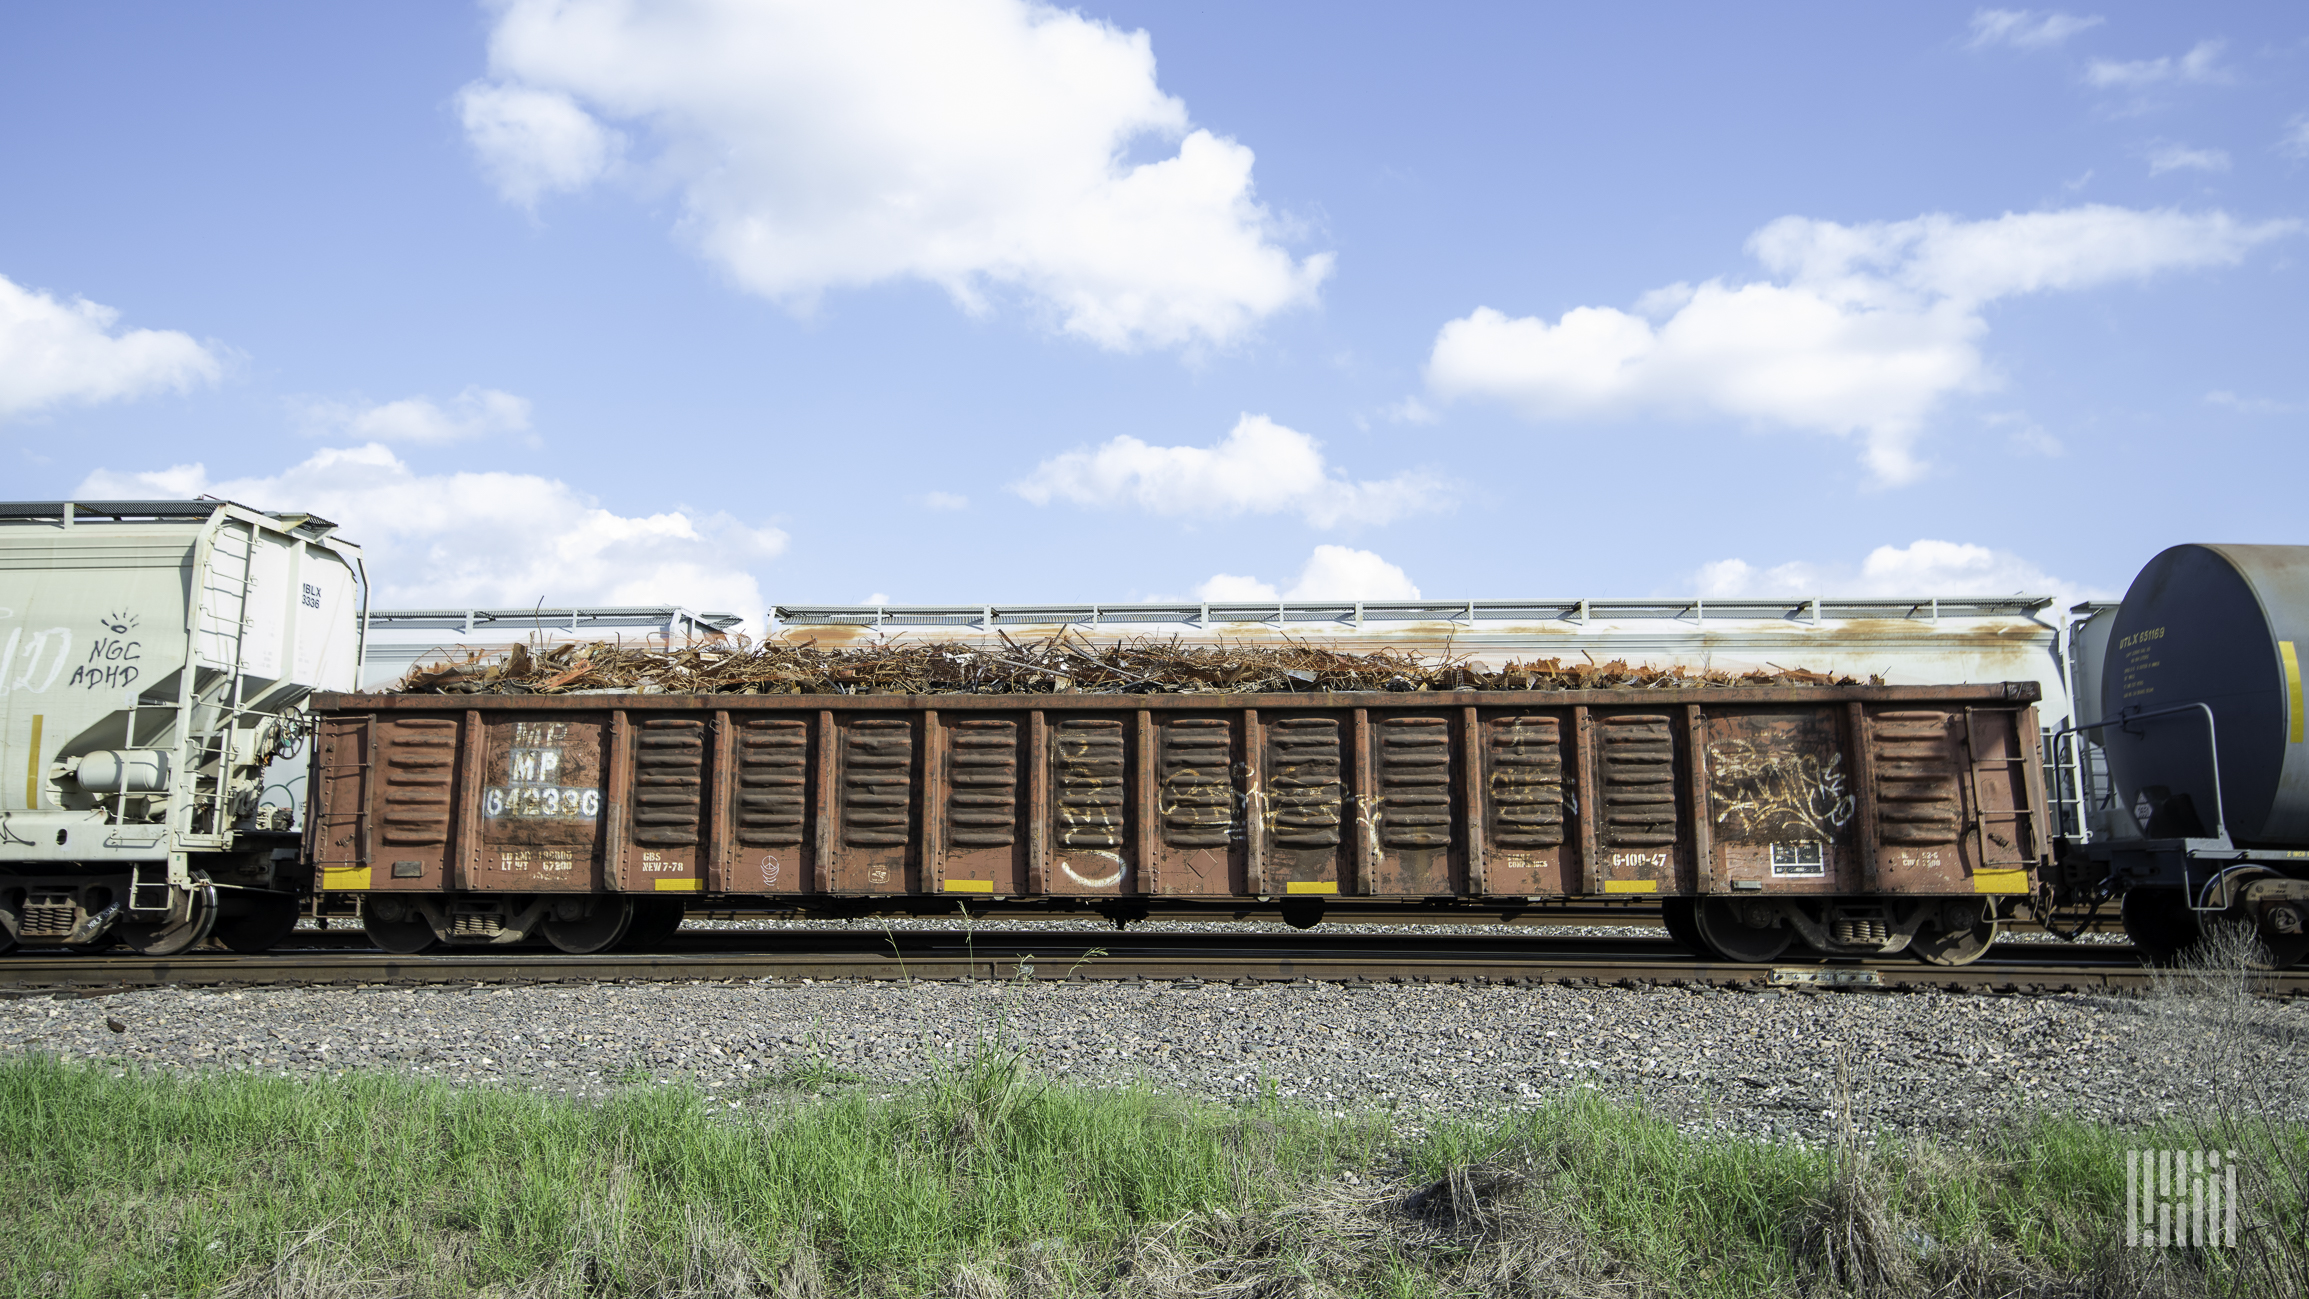 A photograph of railcars on train track.